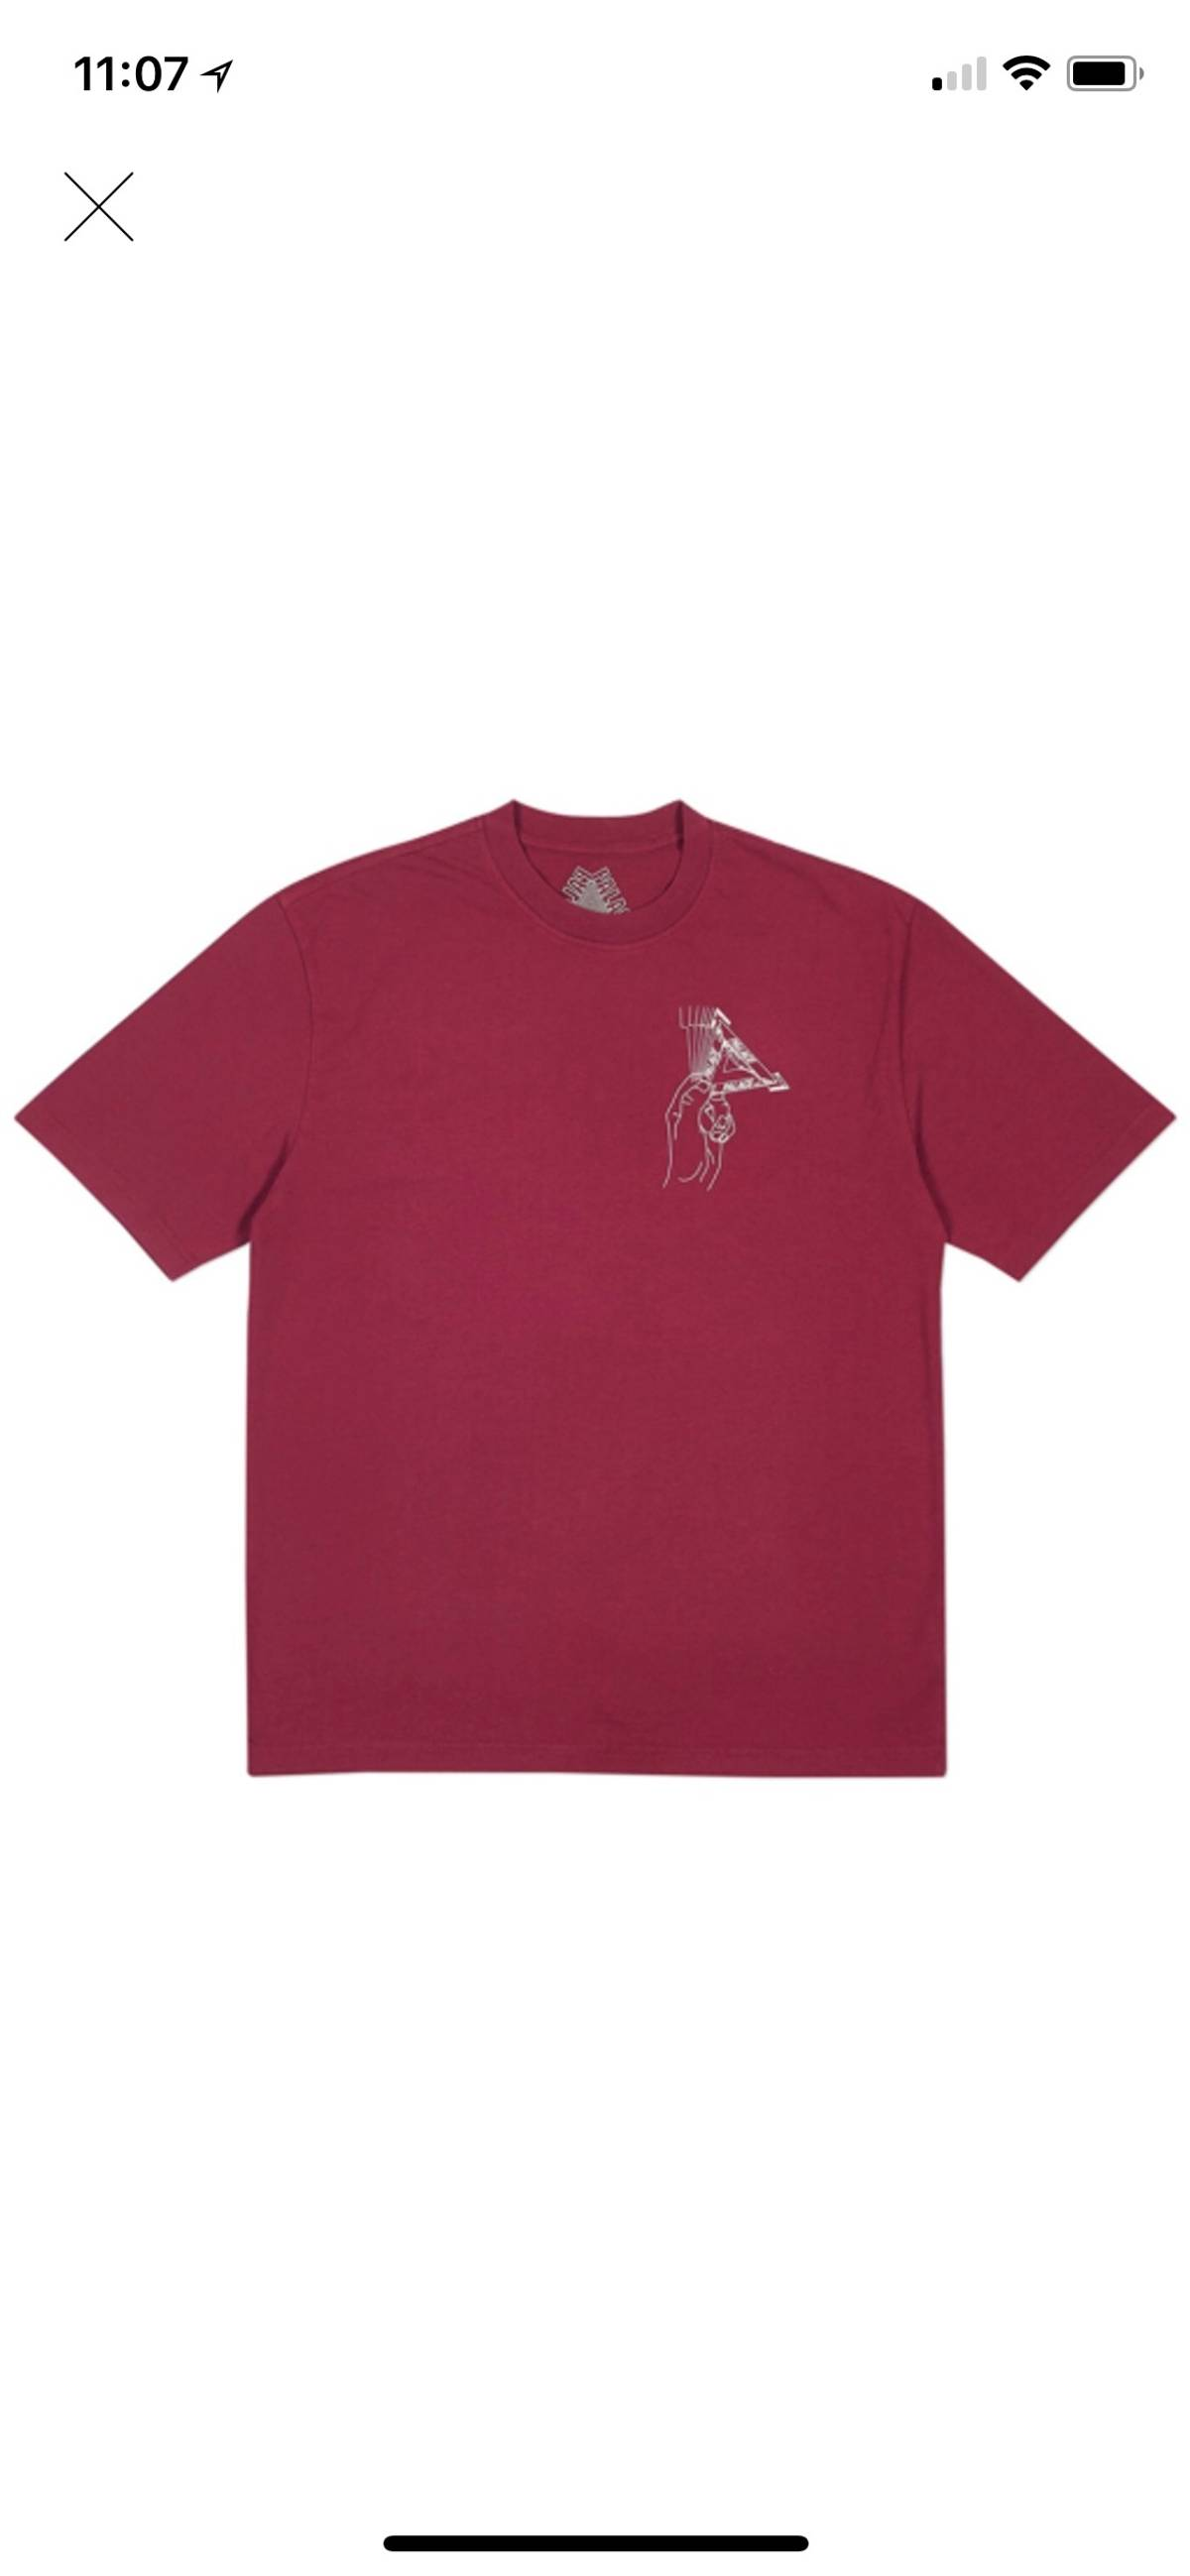 838ab5008d4276 Palace Grand Master T Shirt Cherry Red Size m - Short Sleeve T-Shirts for  Sale - Grailed